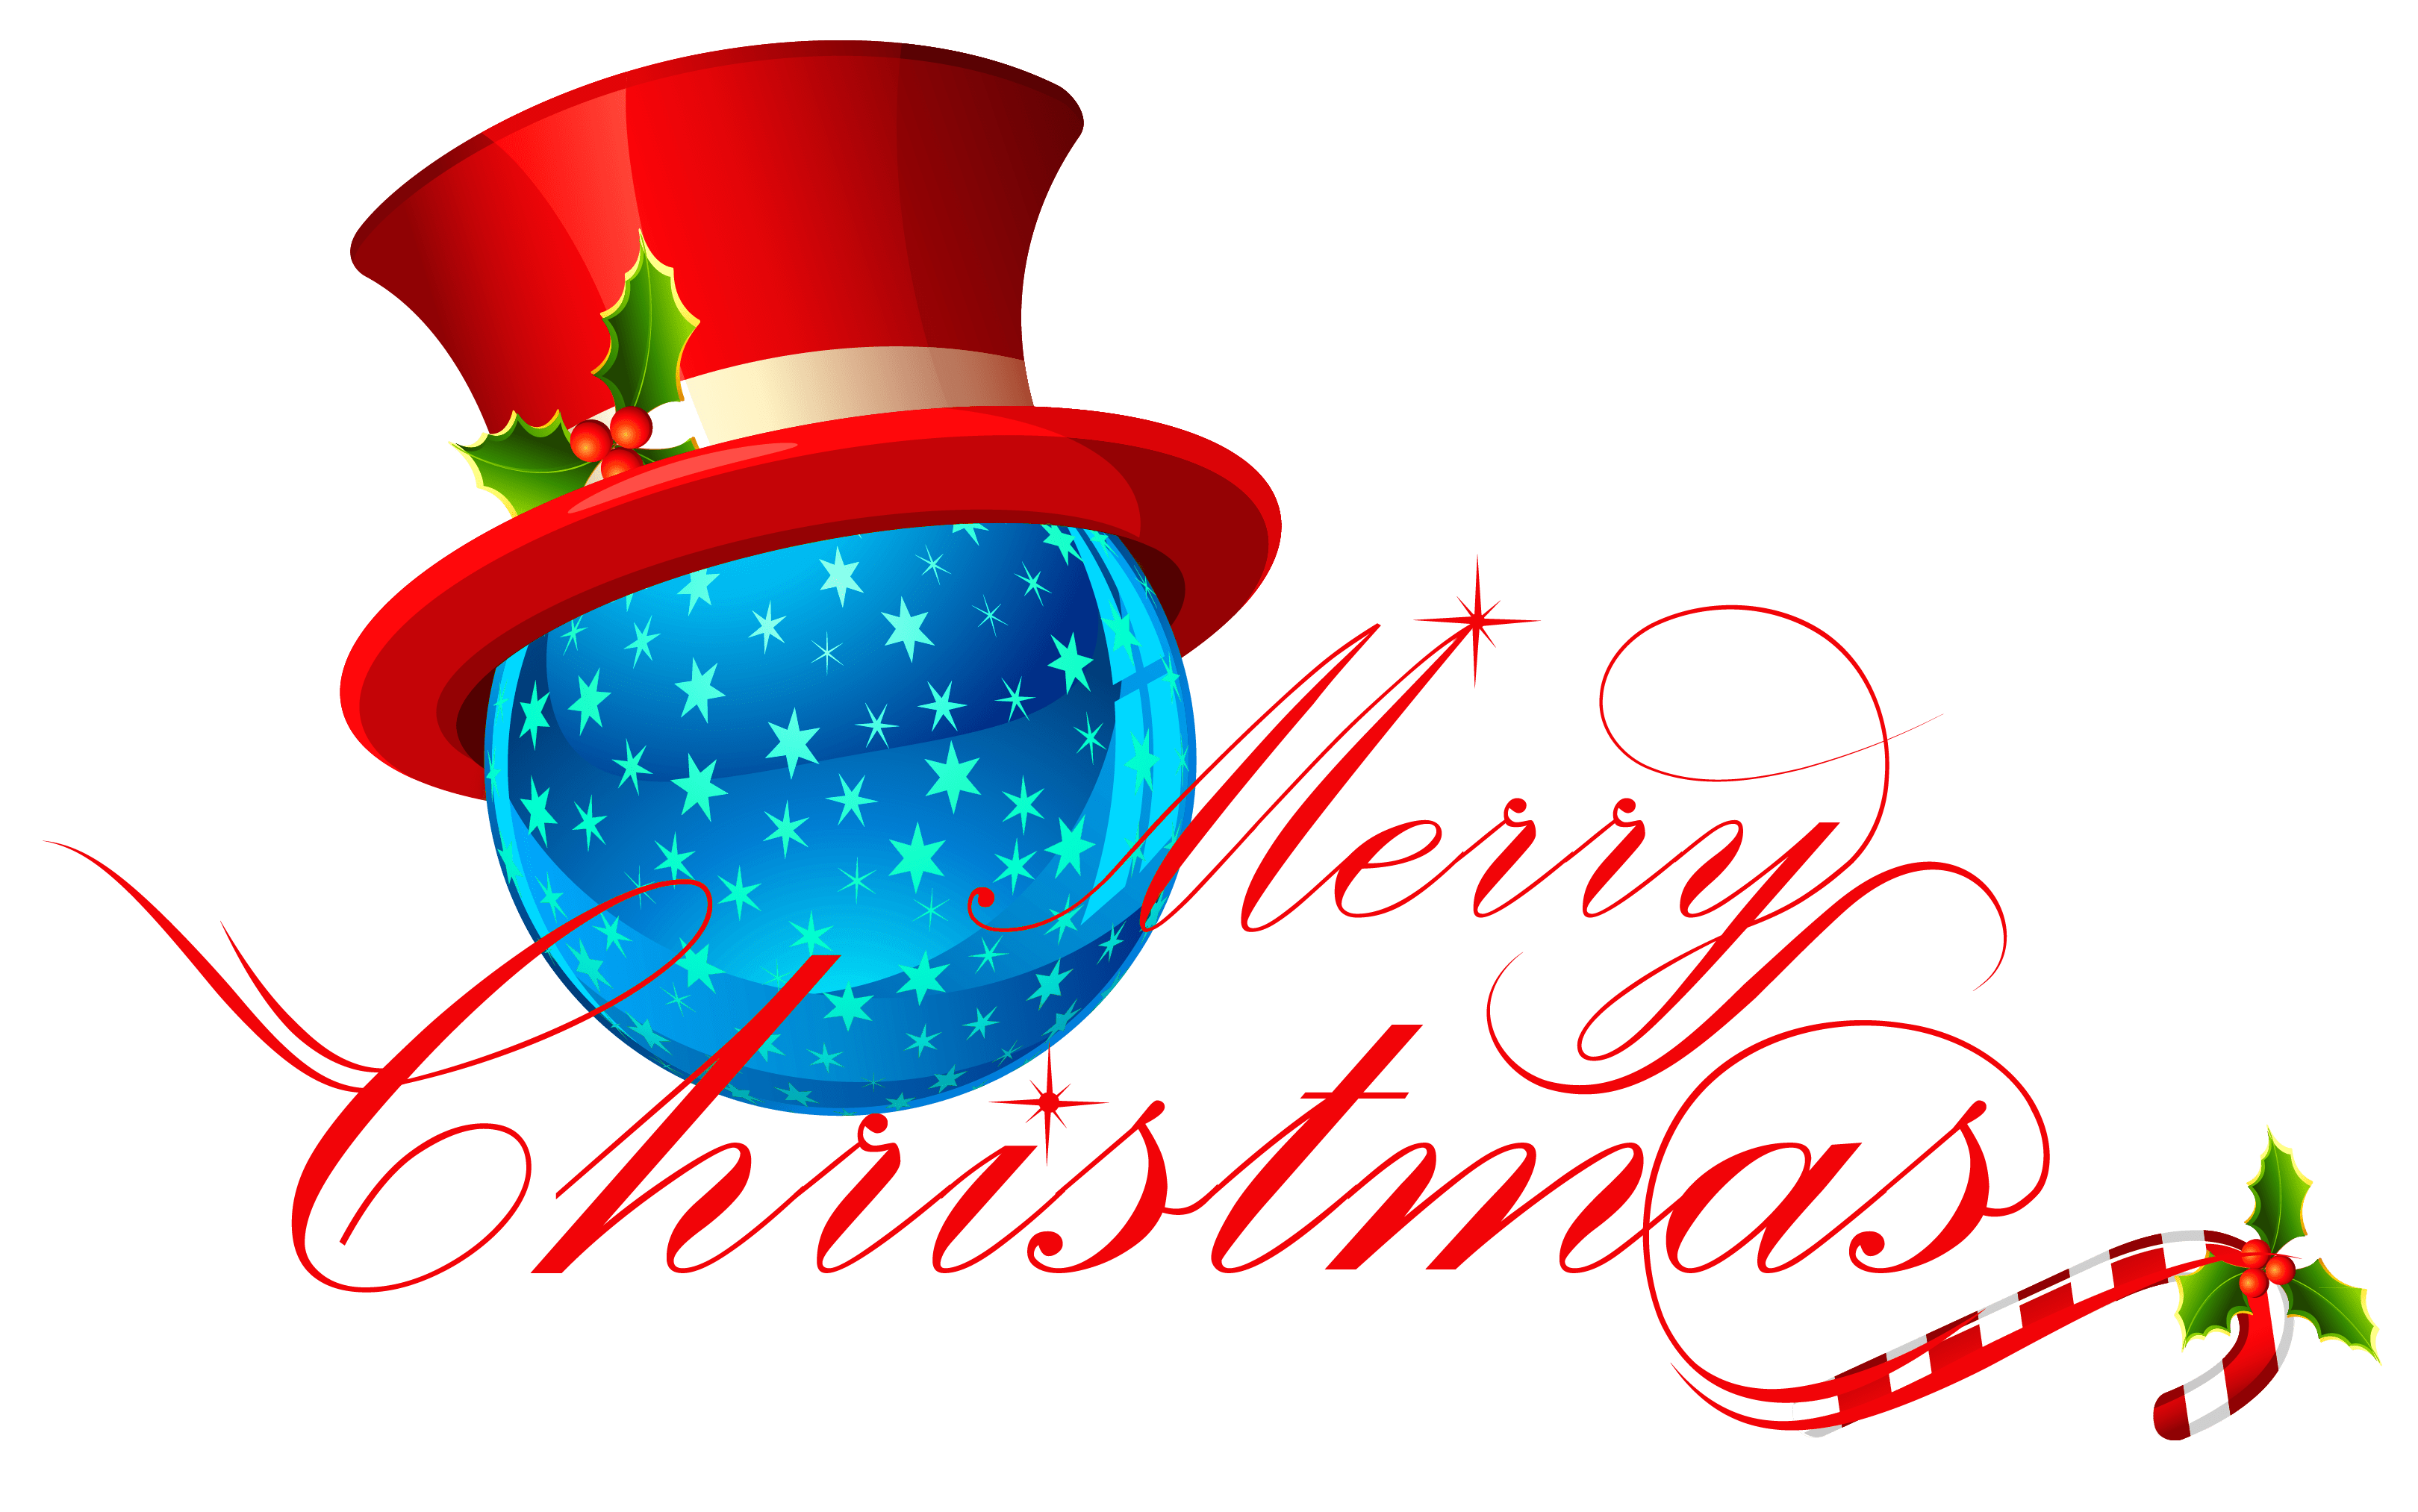 December clipart merry christmas. Sign transparent png stickpng